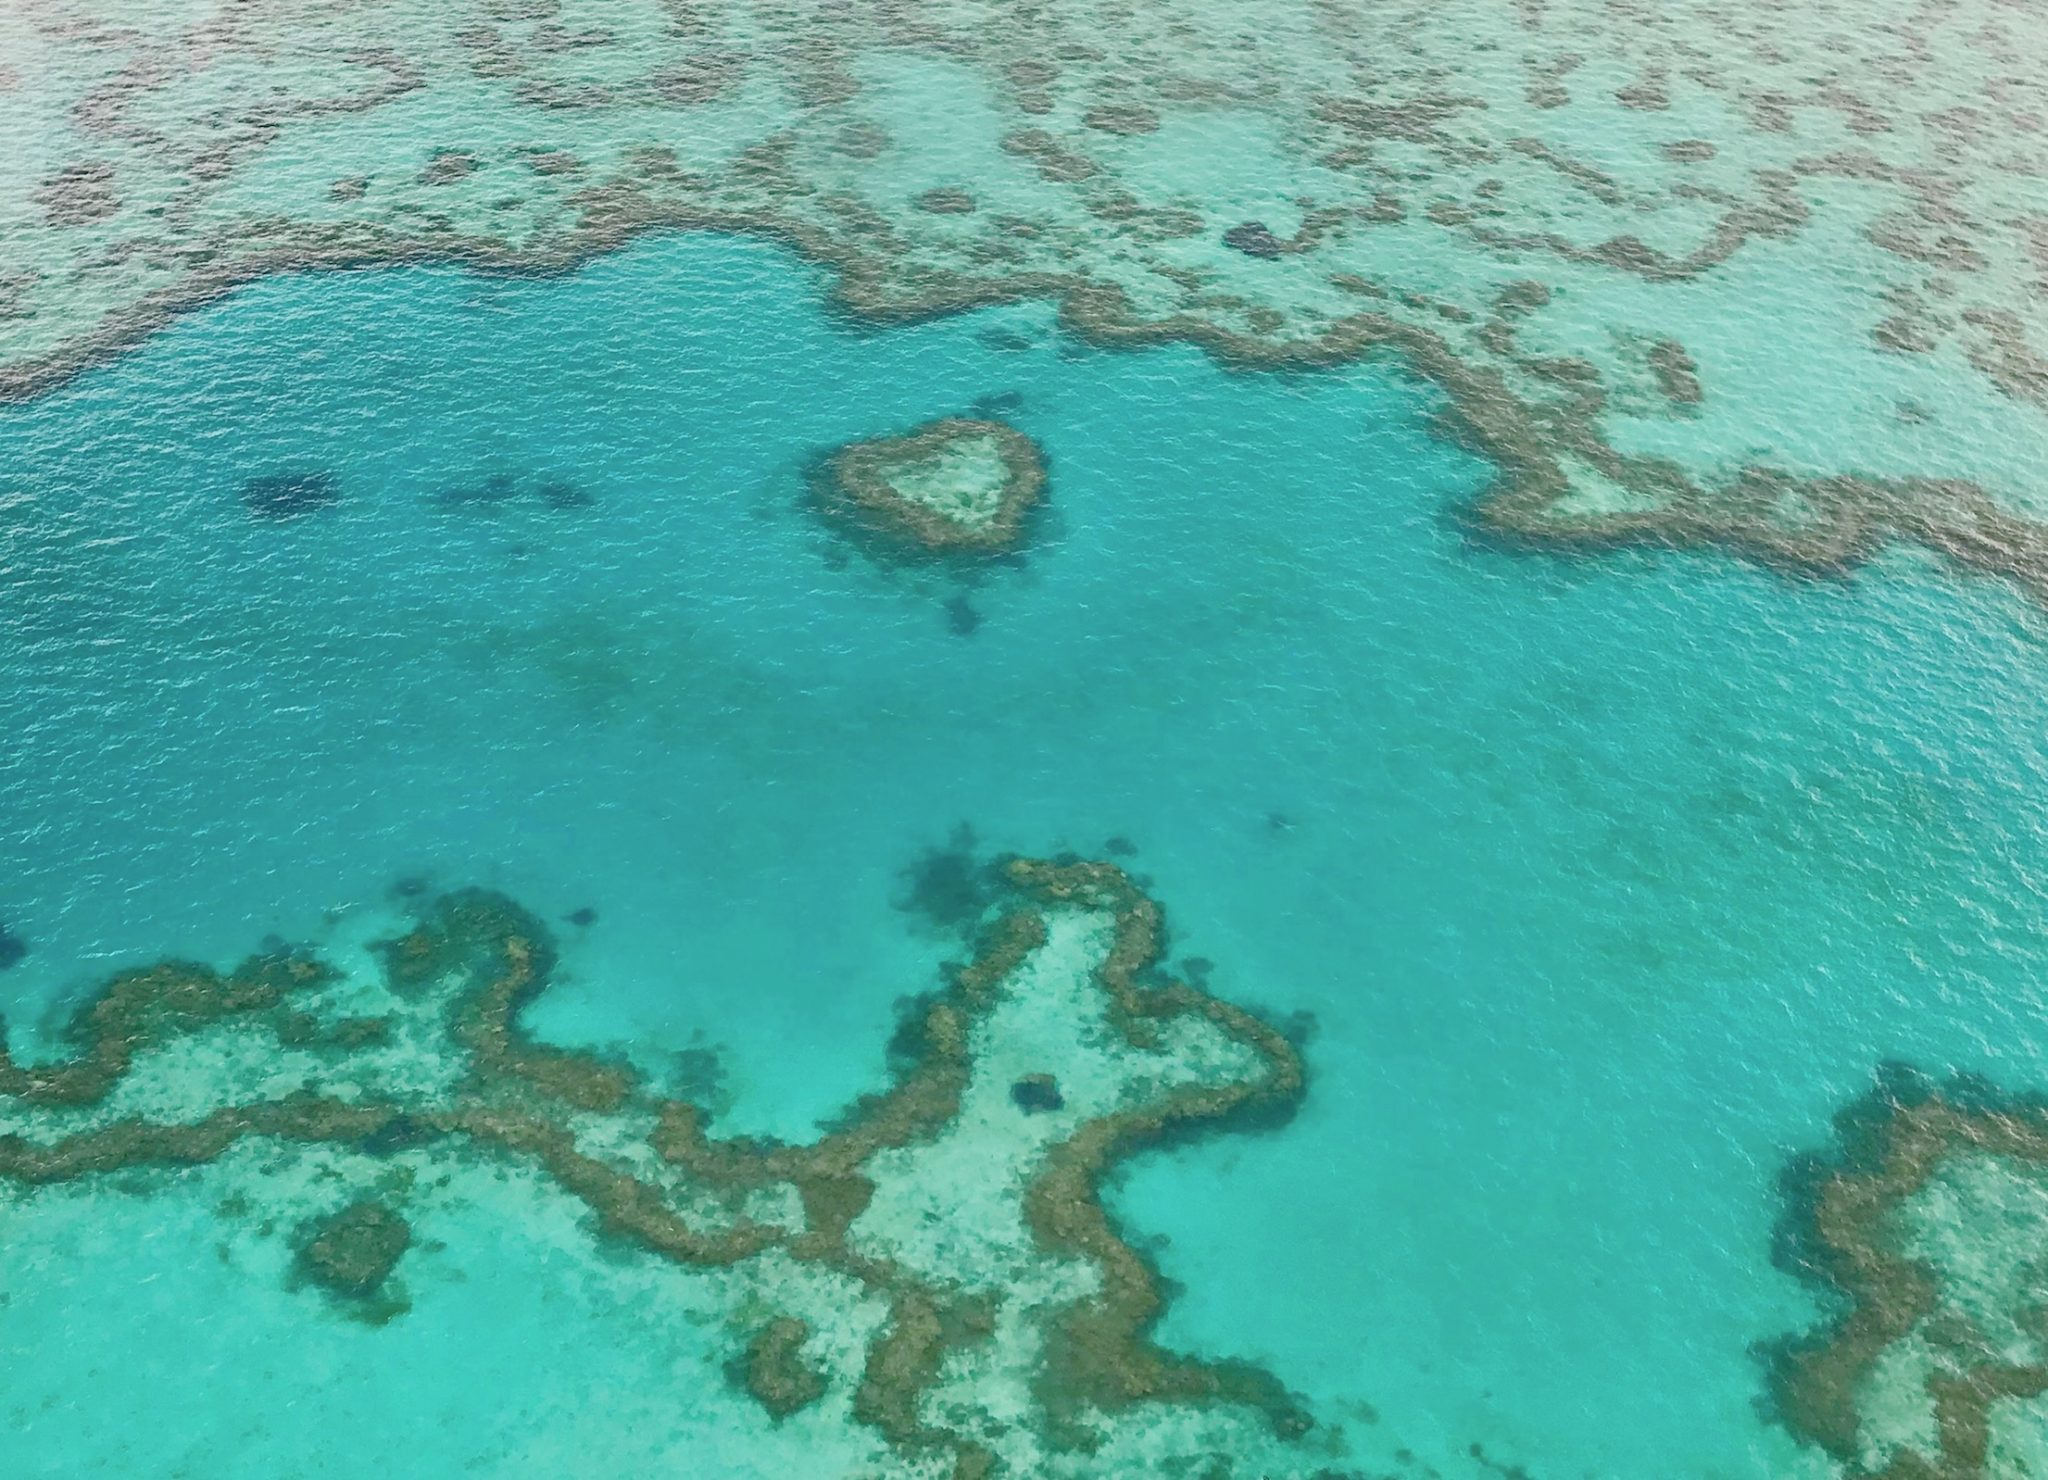 The Whitsundays: How To Experience The Best Of The Whitsunday Islands